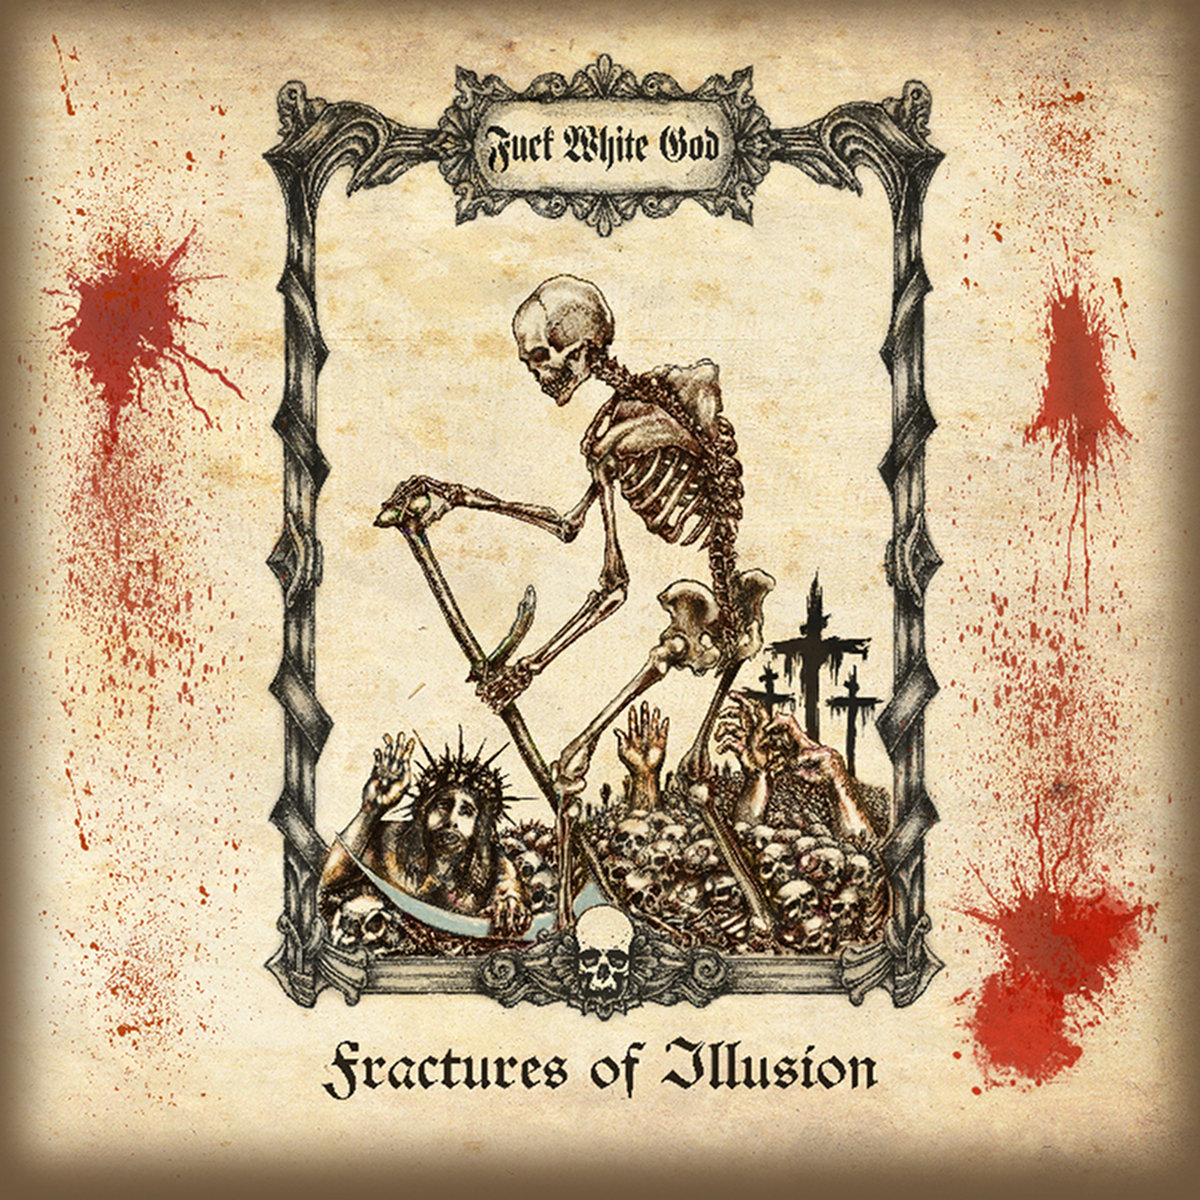 https://fuckwhitegod.bandcamp.com/album/fractures-of-illusion